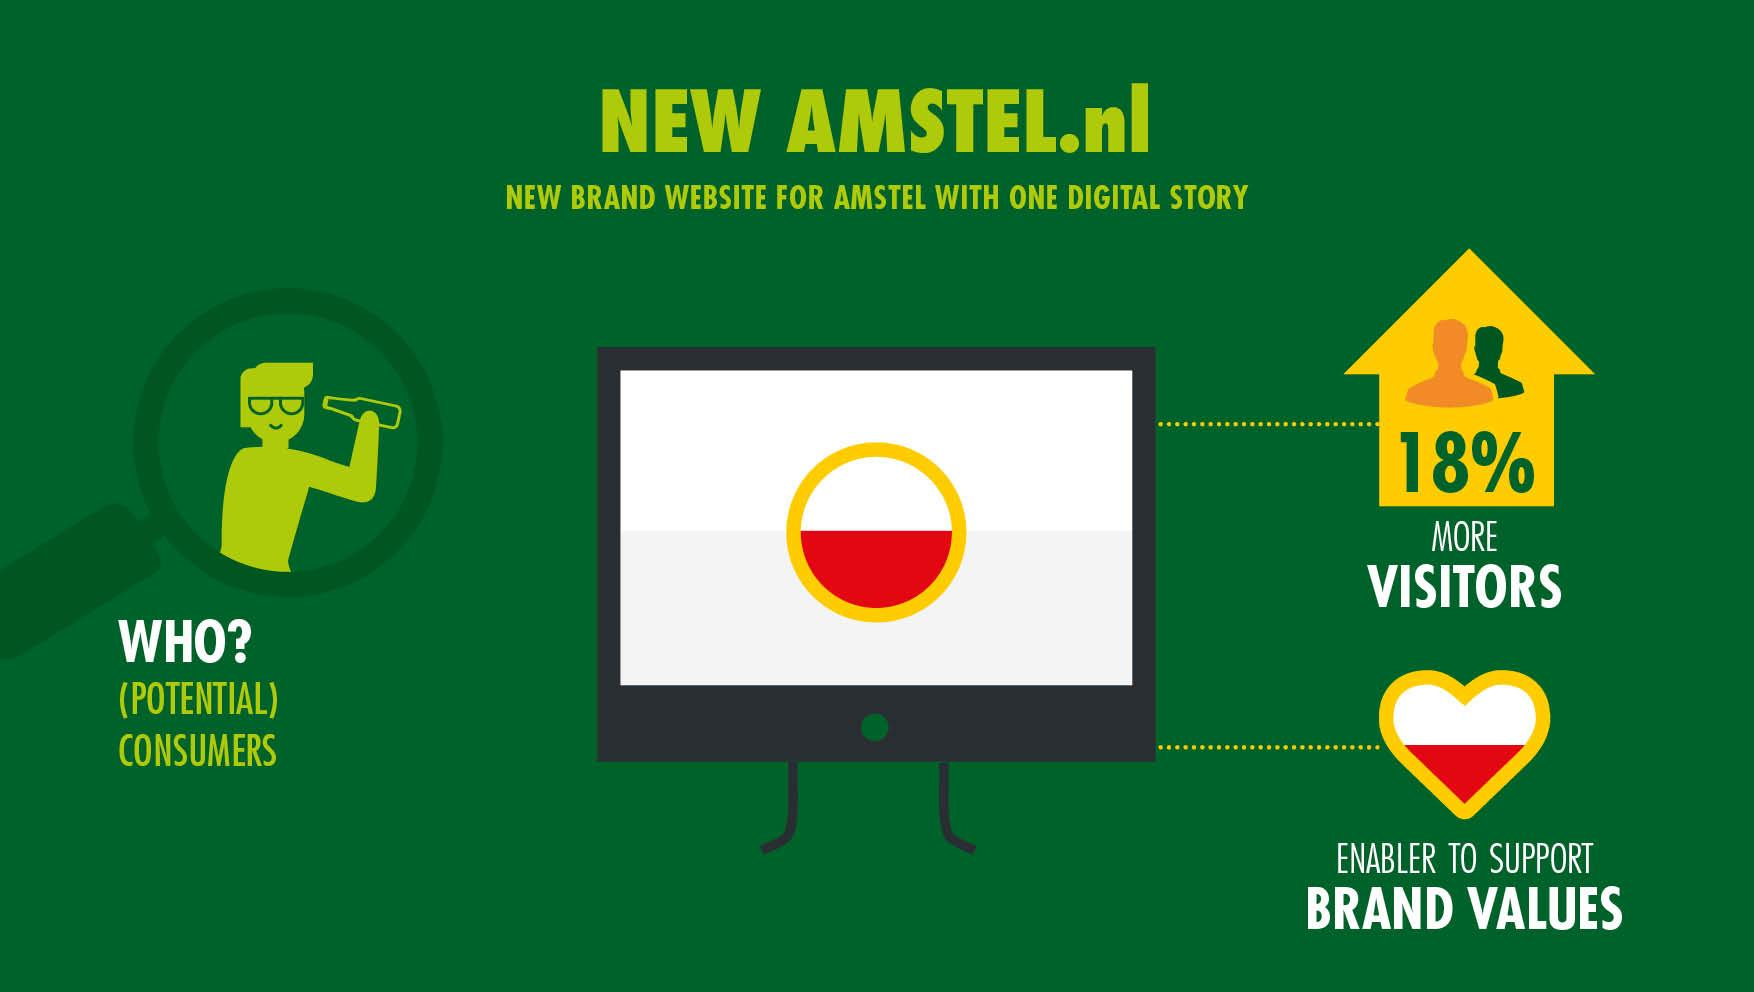 slides-heineken---team-digital-nl---year-201512.jpg